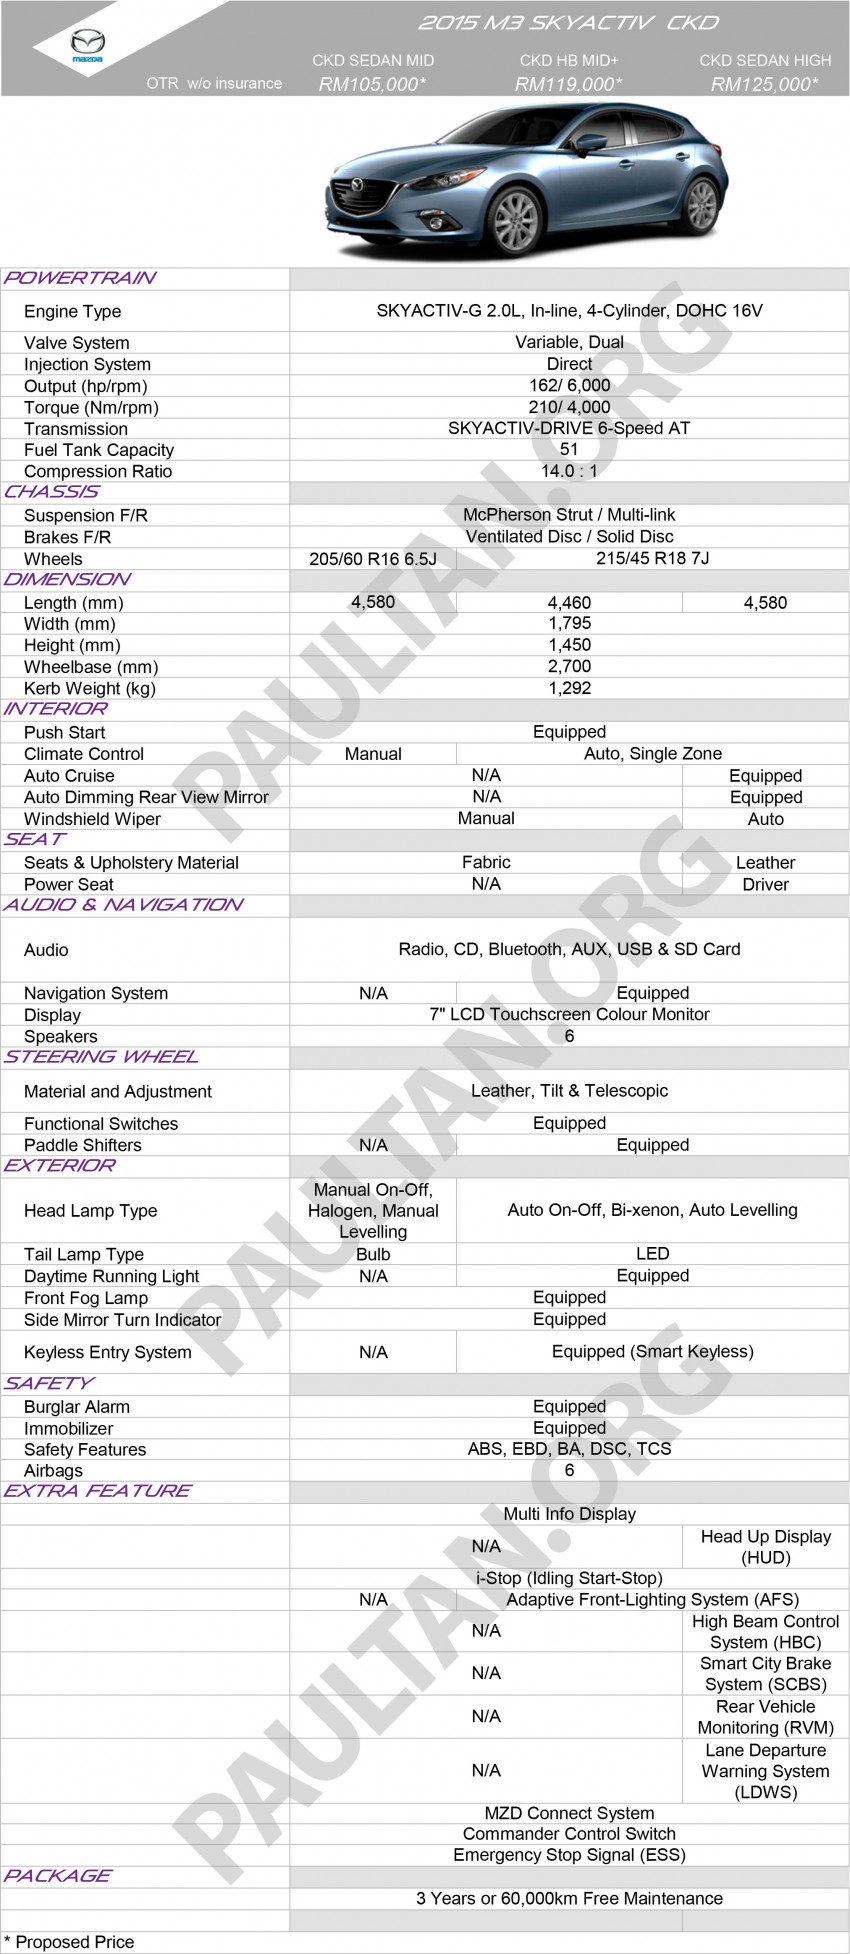 2015 Mazda 3 CKD – specs, prices officially revealed Image #319233